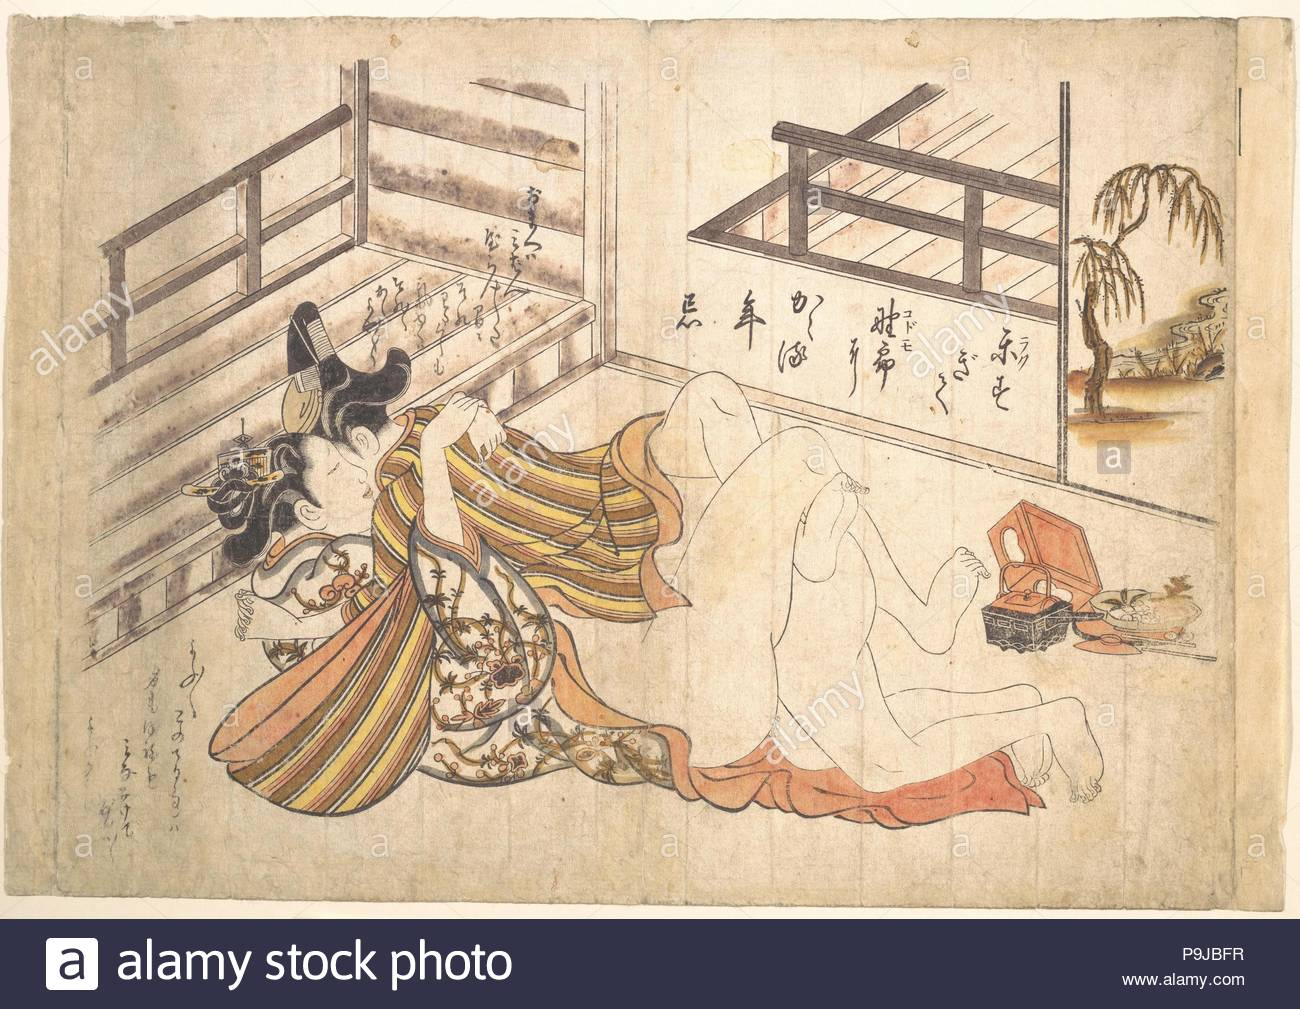 1739 Japan Polychrome Woodblock Print Ink And Color On Paper Hand Colored 10 3 4 X 15 8 In 273 391 Cm Prints Okumura Masanobu Japanese